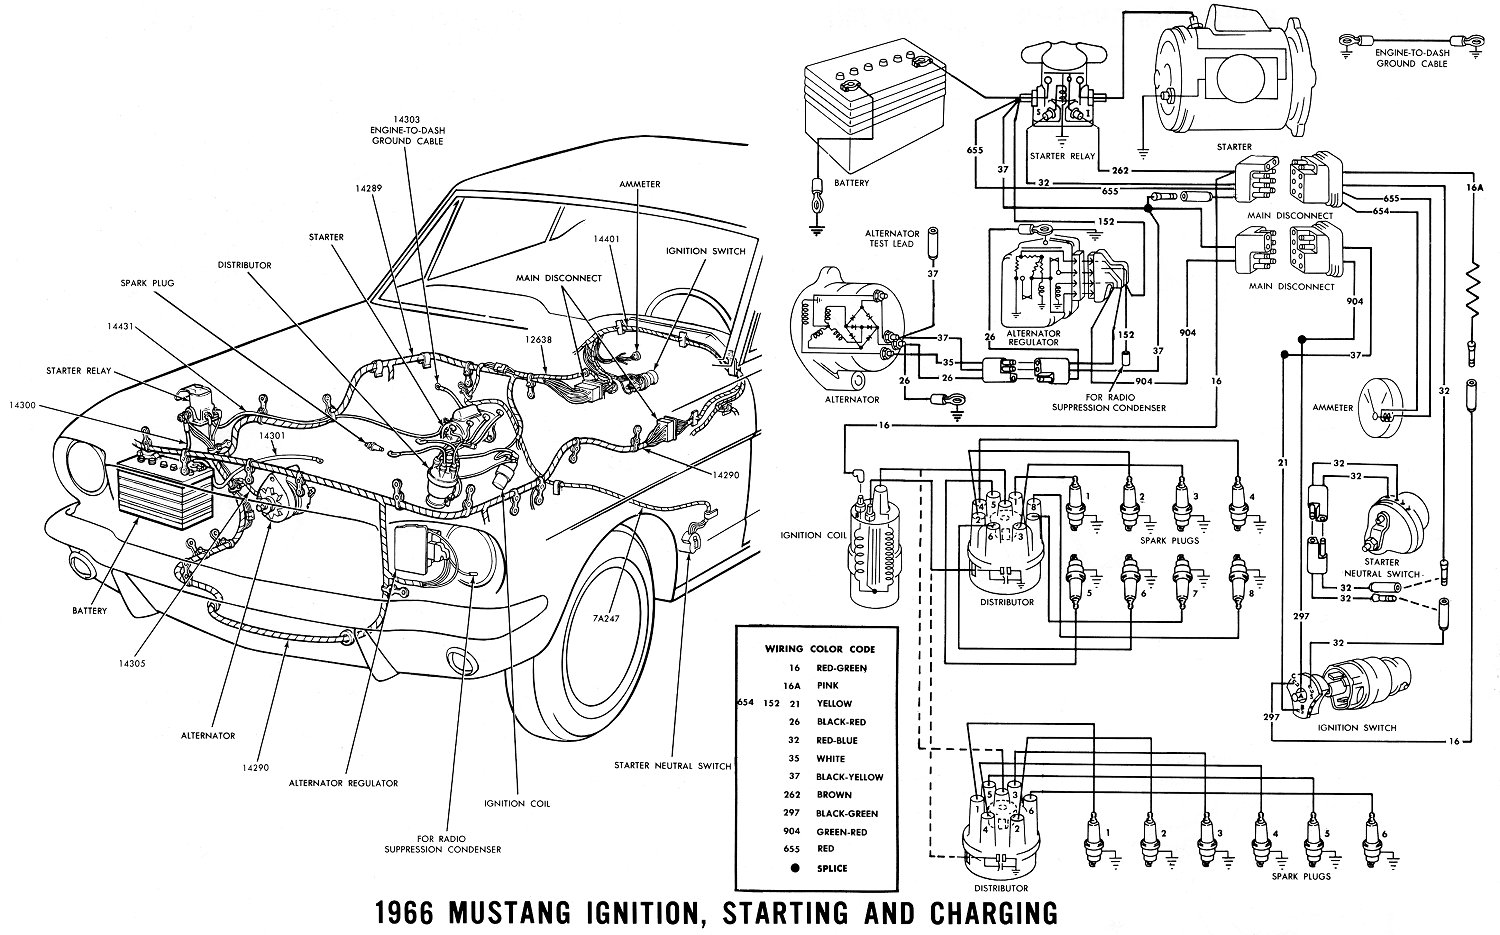 1980 c10 engine bay diagram